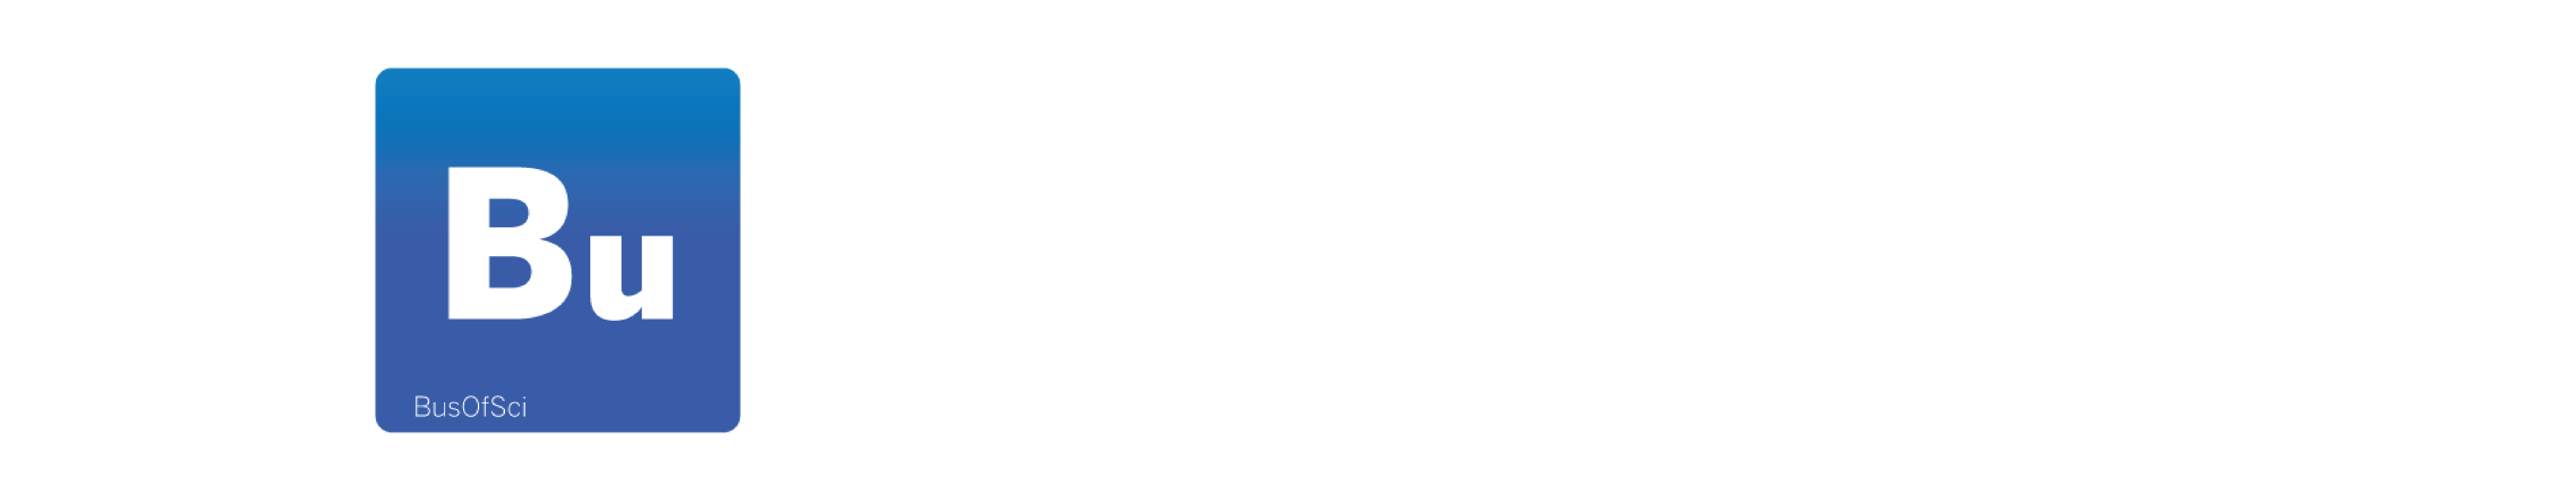 Business-of-Science-Coming-Soon